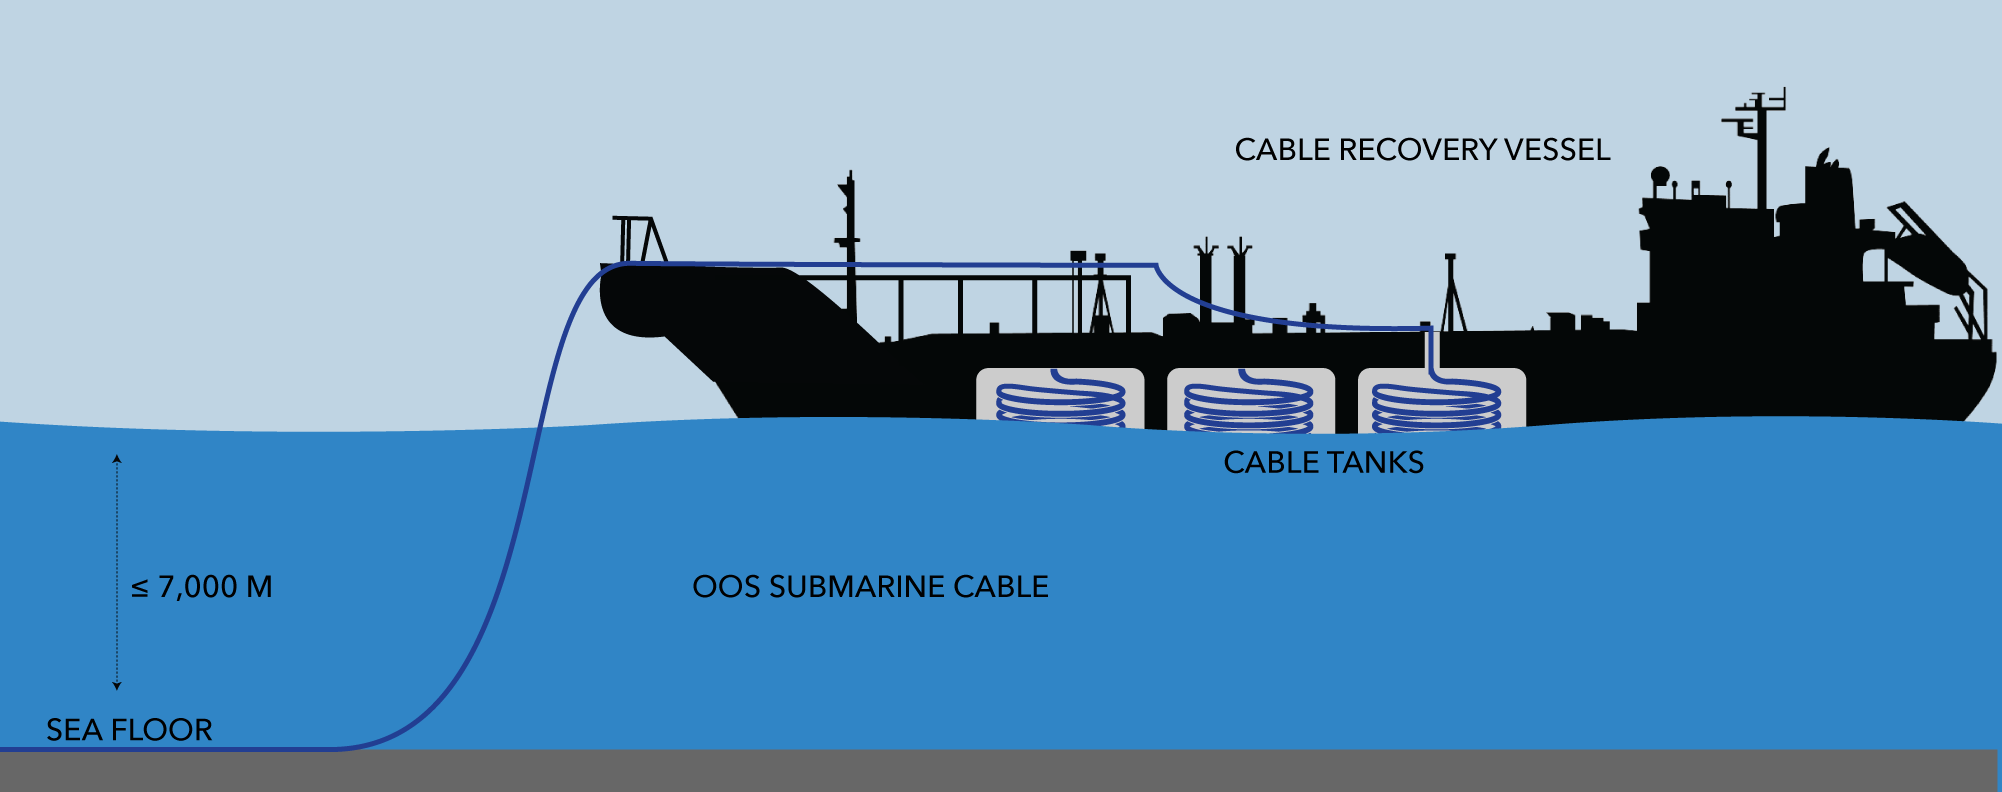 SES Cable Recovery Process